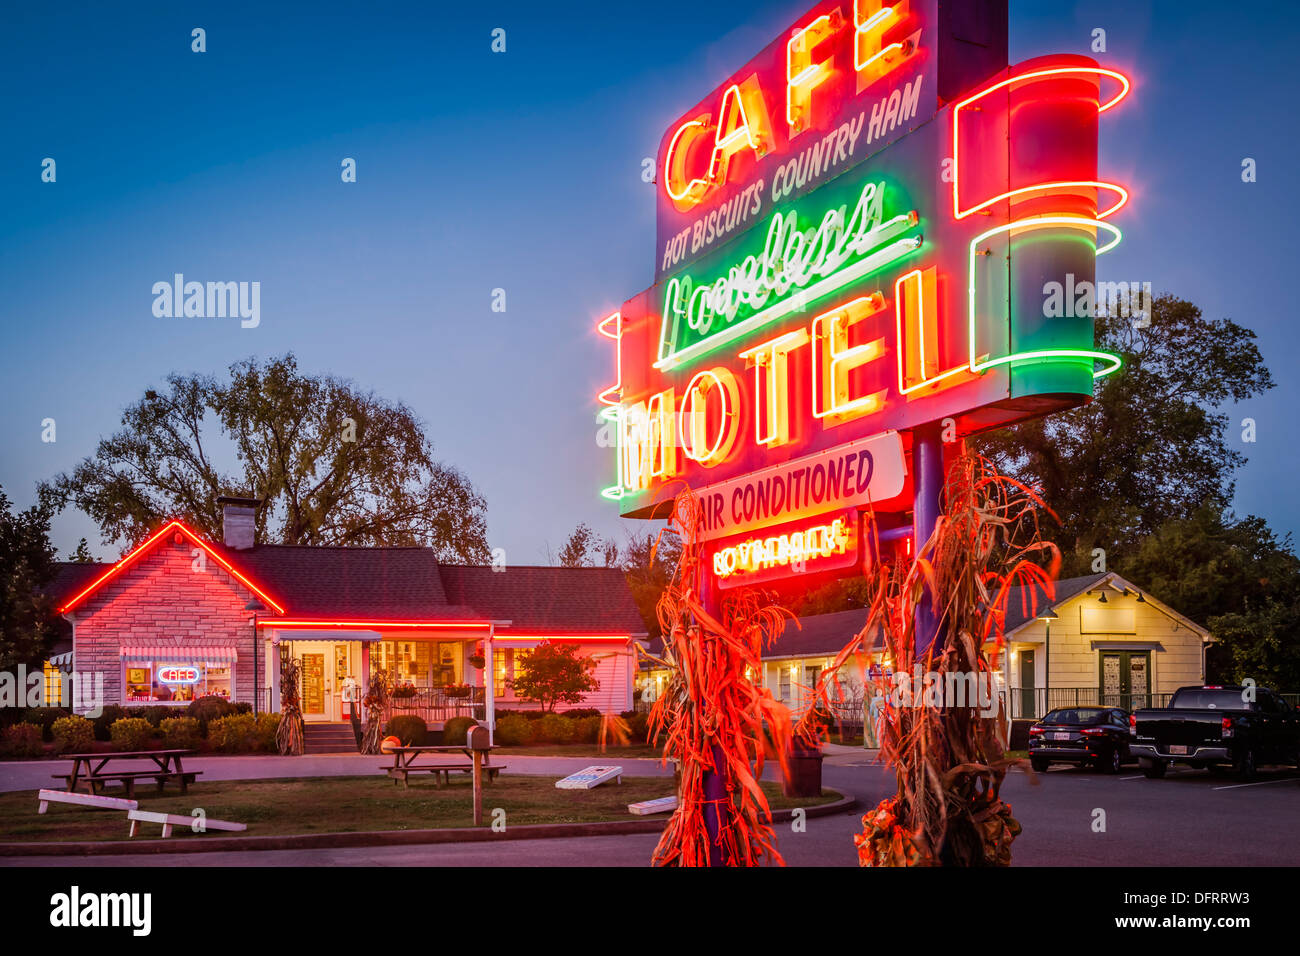 The famous Loveless Cafe and Motel near Nashville Tennessee, USA - Stock Image